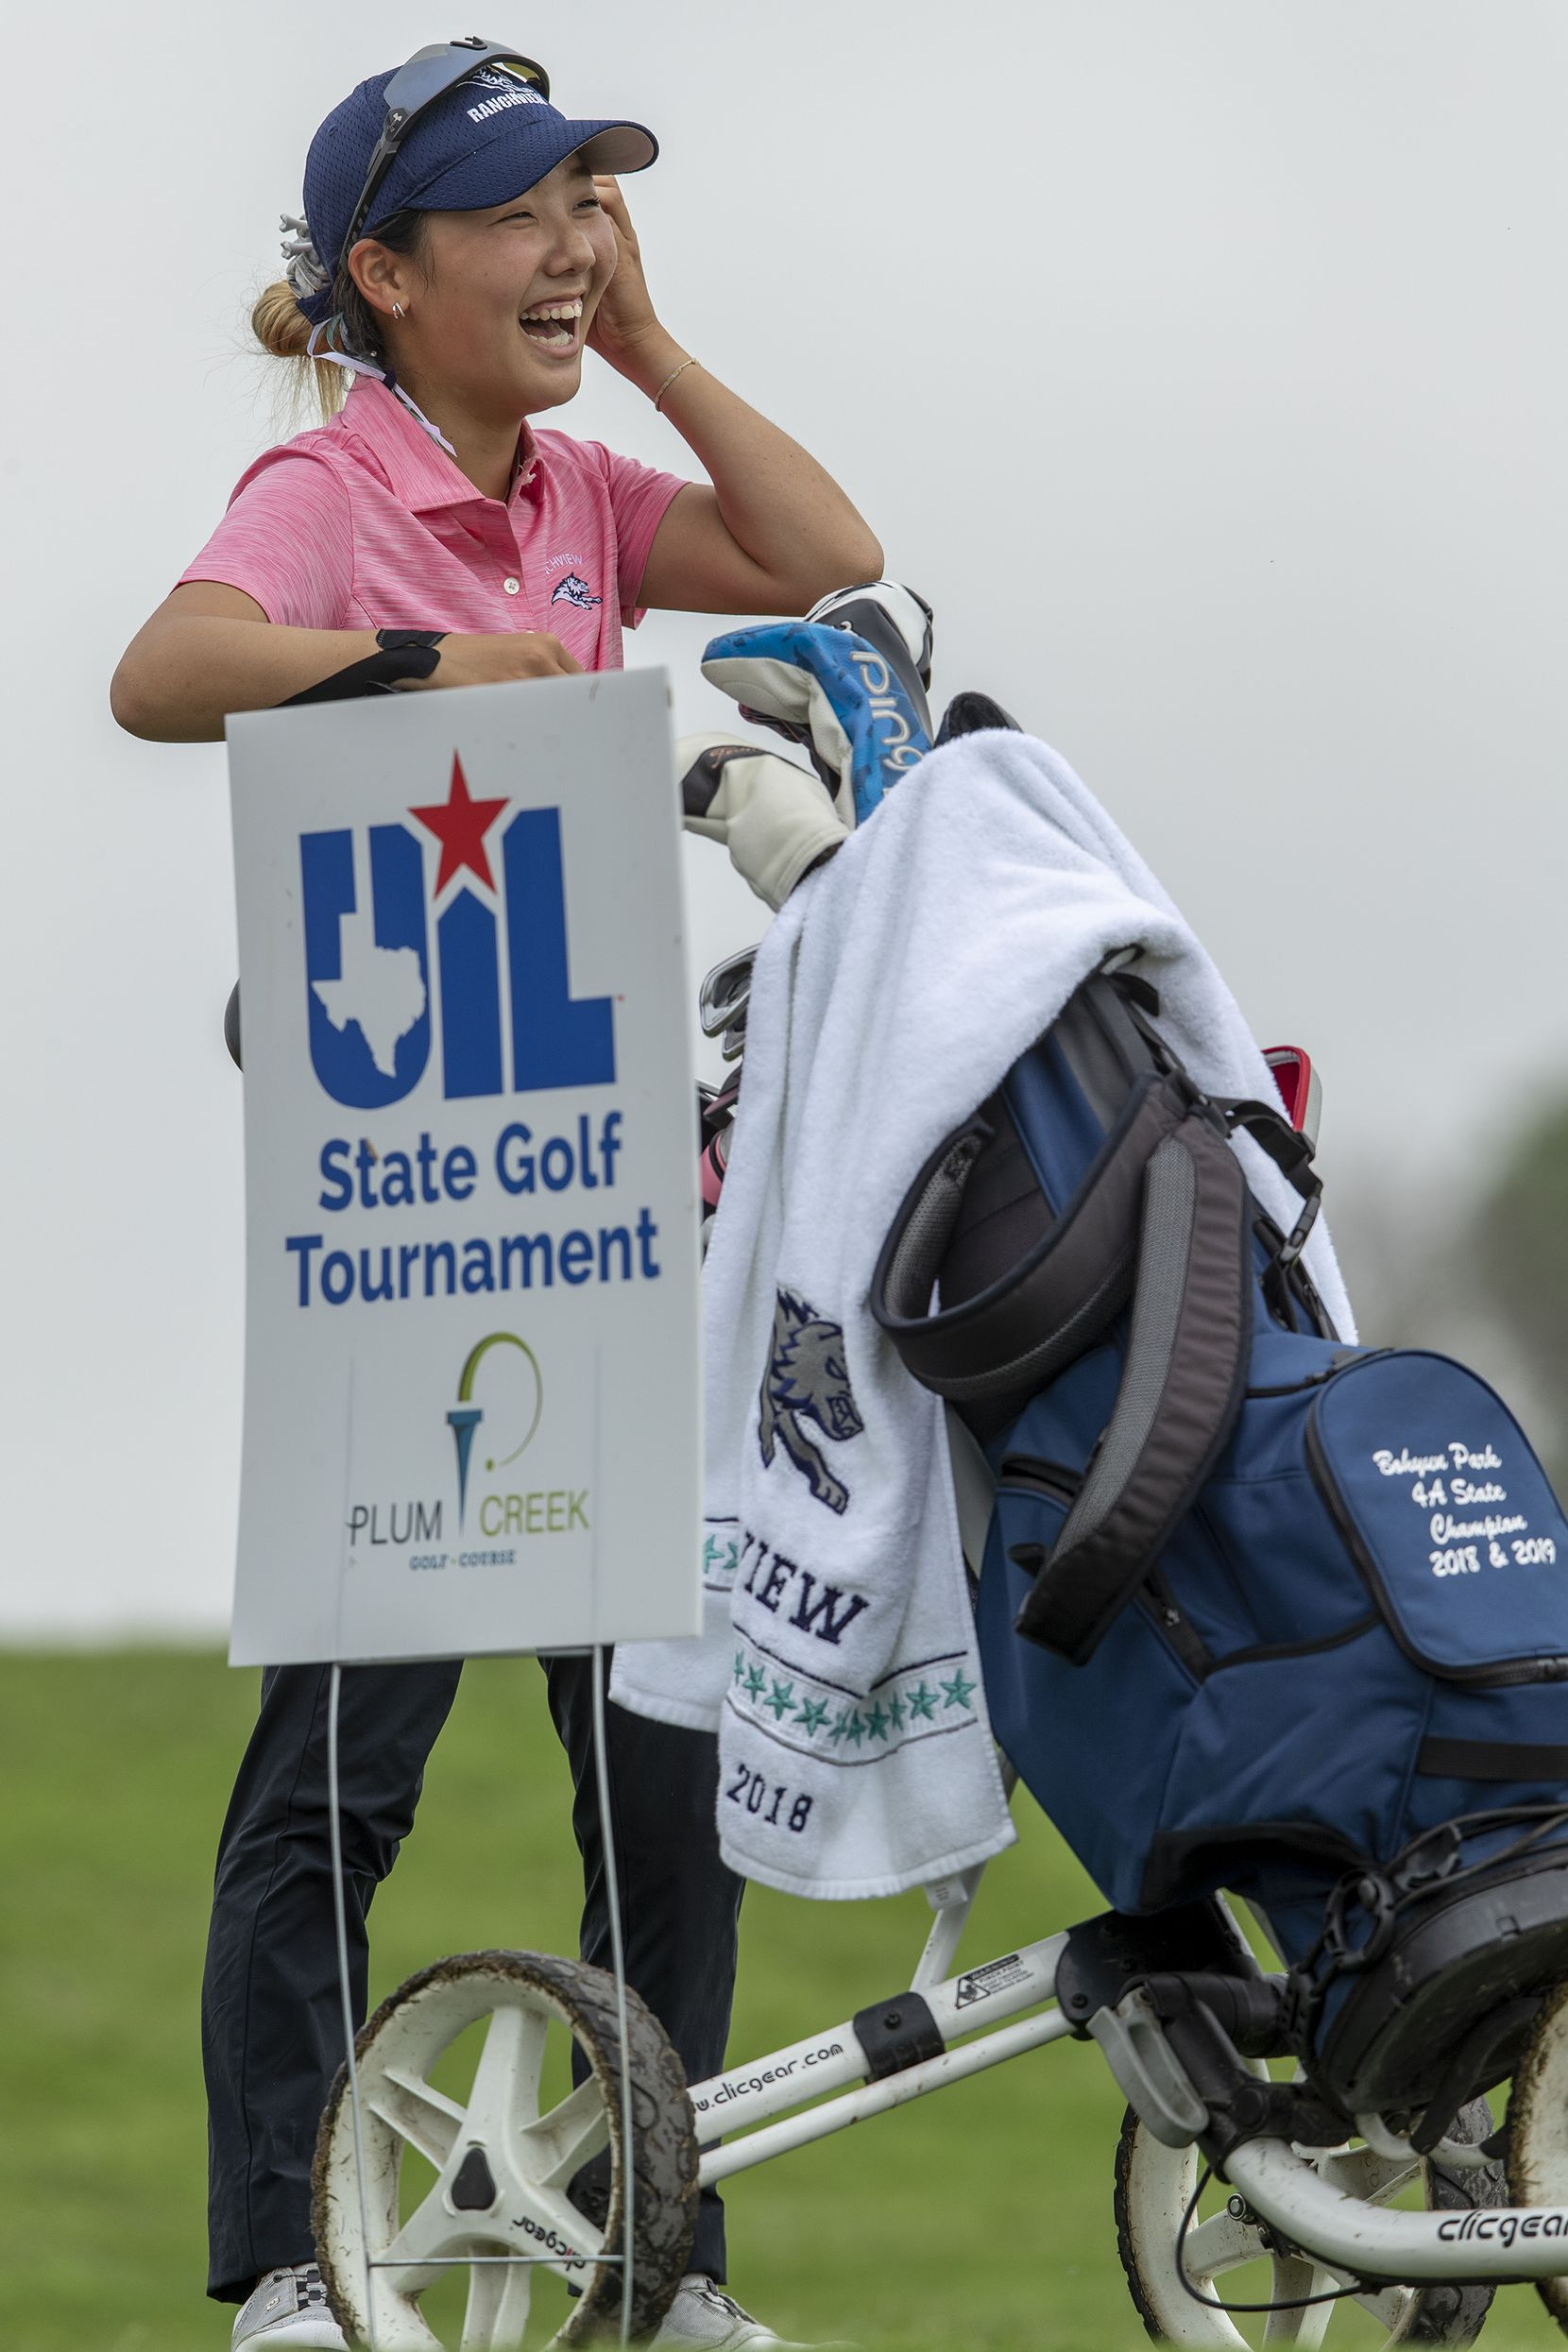 Carrollton Ranchview's Bohyun Park prepares to hit from the 10th tee box during the final day of the UIL Class 4A girls golf tournament in Kyle, Tuesday, May 11, 2021. (Stephen Spillman/Special Contributor)